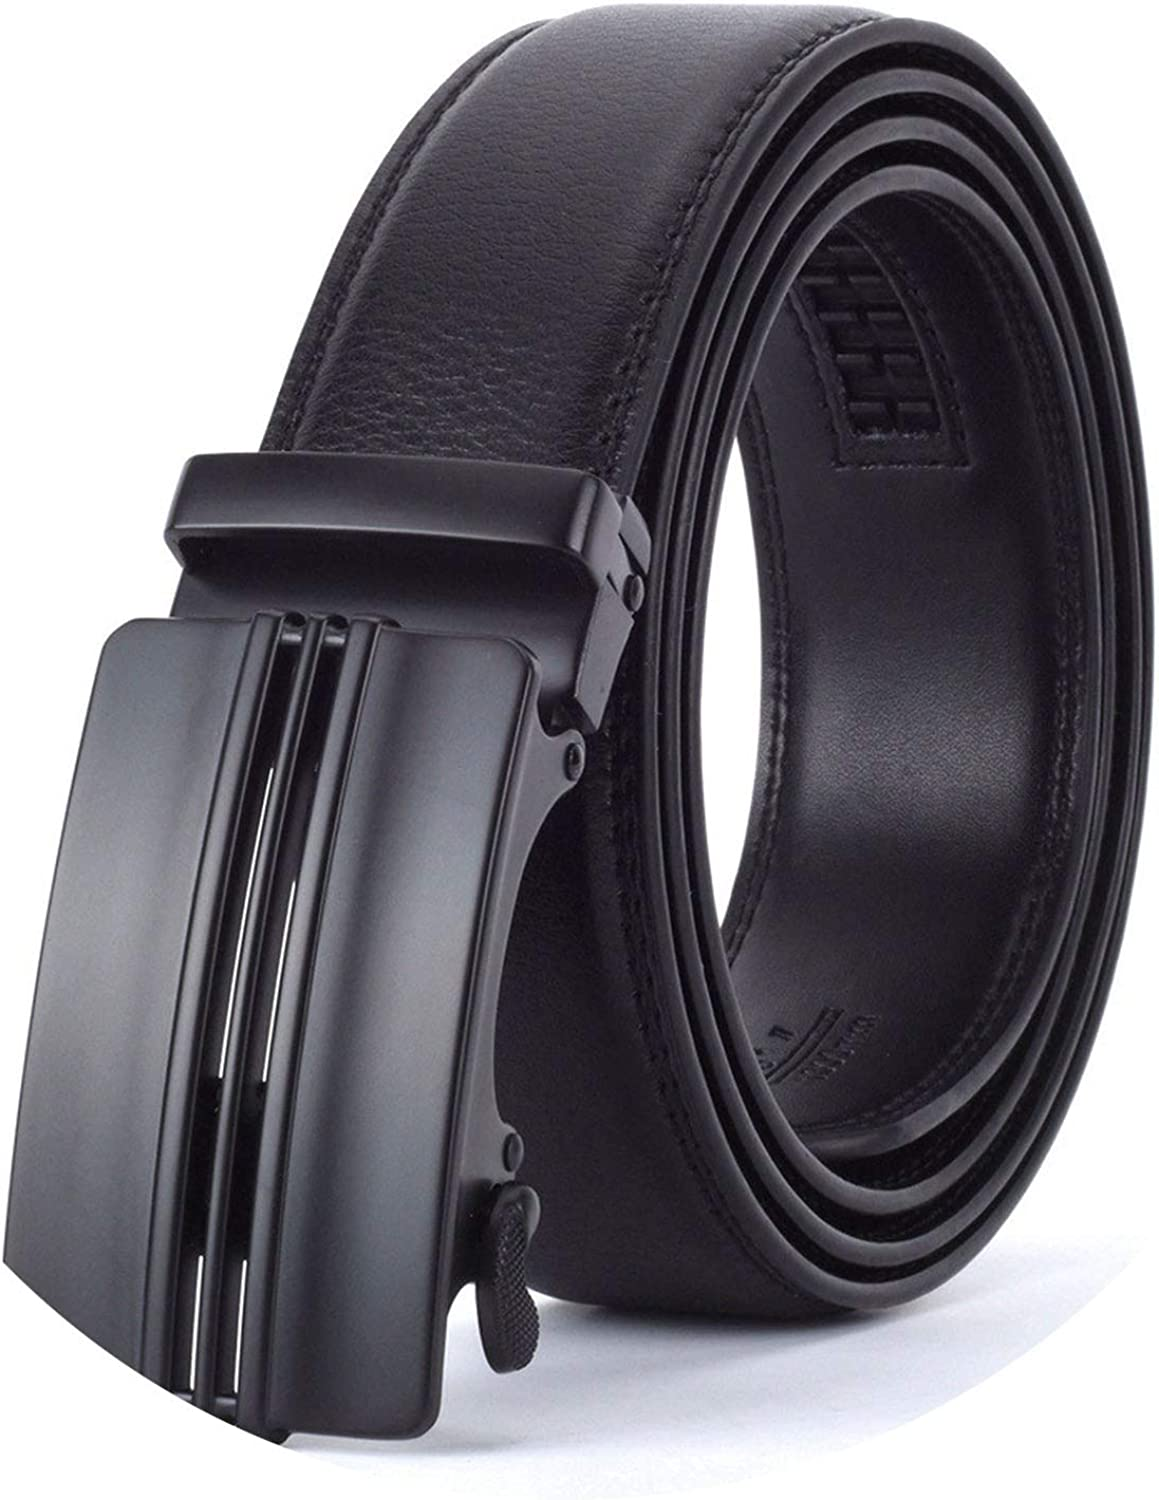 Go get it now Men Automatic Buckle Leather Belt Business Male Alloy buckle Belts for Men